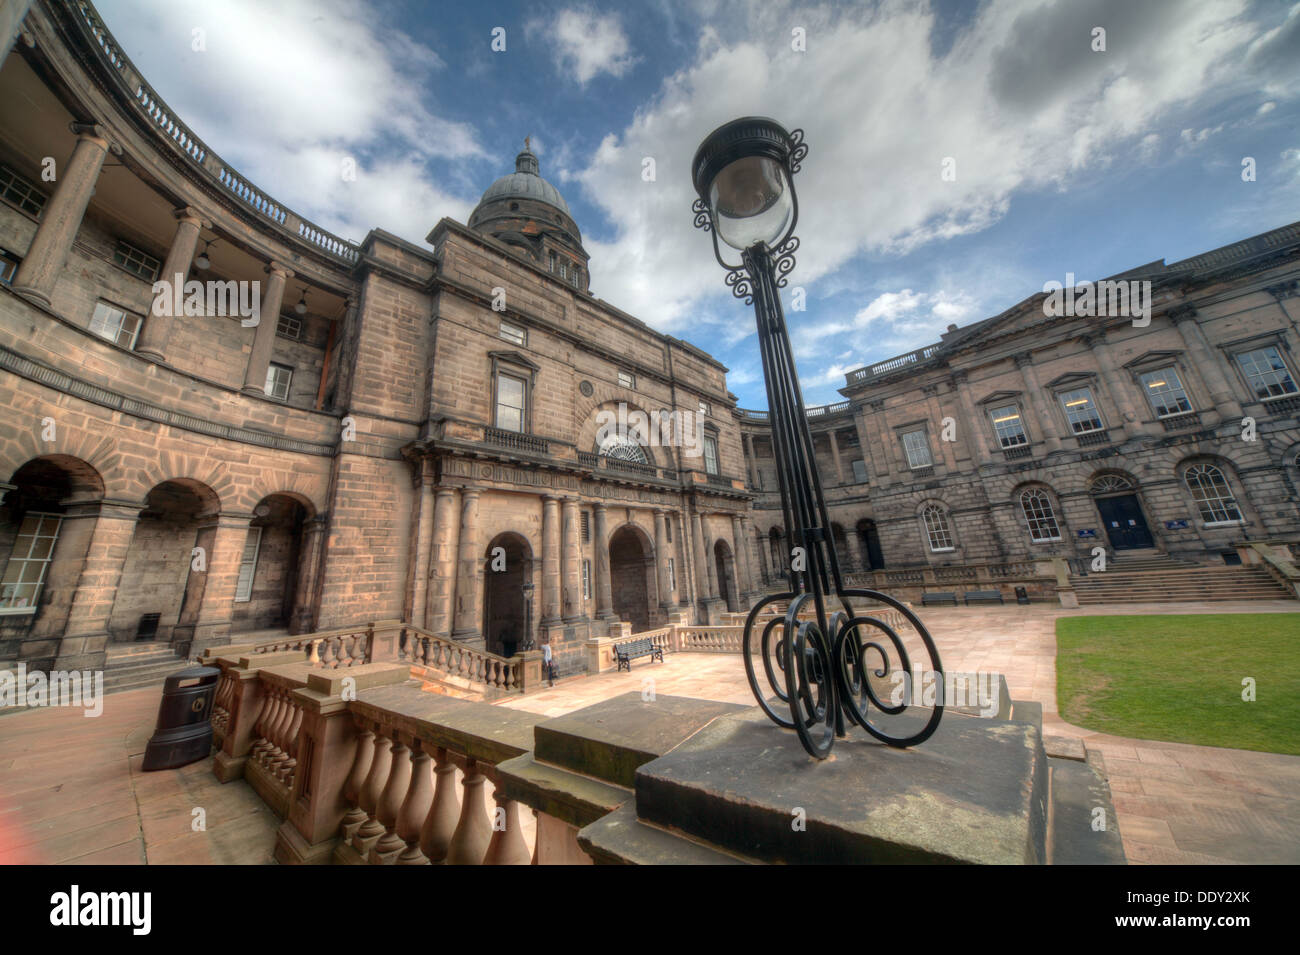 Scotland,UK,Scottish,uni,school,of,learning,building,architecture,Victorian,old,town,capital,city,cities,world,heritage,site,grade,II,grade2,listed,public,research,summer,2013,grass,Old,College,South,Bridge,Edinburgh,Midlothian,EH8,9YL,EH89YL,wide,view,shot,lens,tourist,tourism,attraction,courtyard,gotonysmith,oldtown,Edinburg,icon,iconic,Scots,Scotish,Scottish,Scotland,problem,with,Uni,stone,history,historic,tourist,tourism,tour,travel,study,student,Buy Pictures of,Buy Images Of,problem with,Edinburgh University,Edinburgh Uni